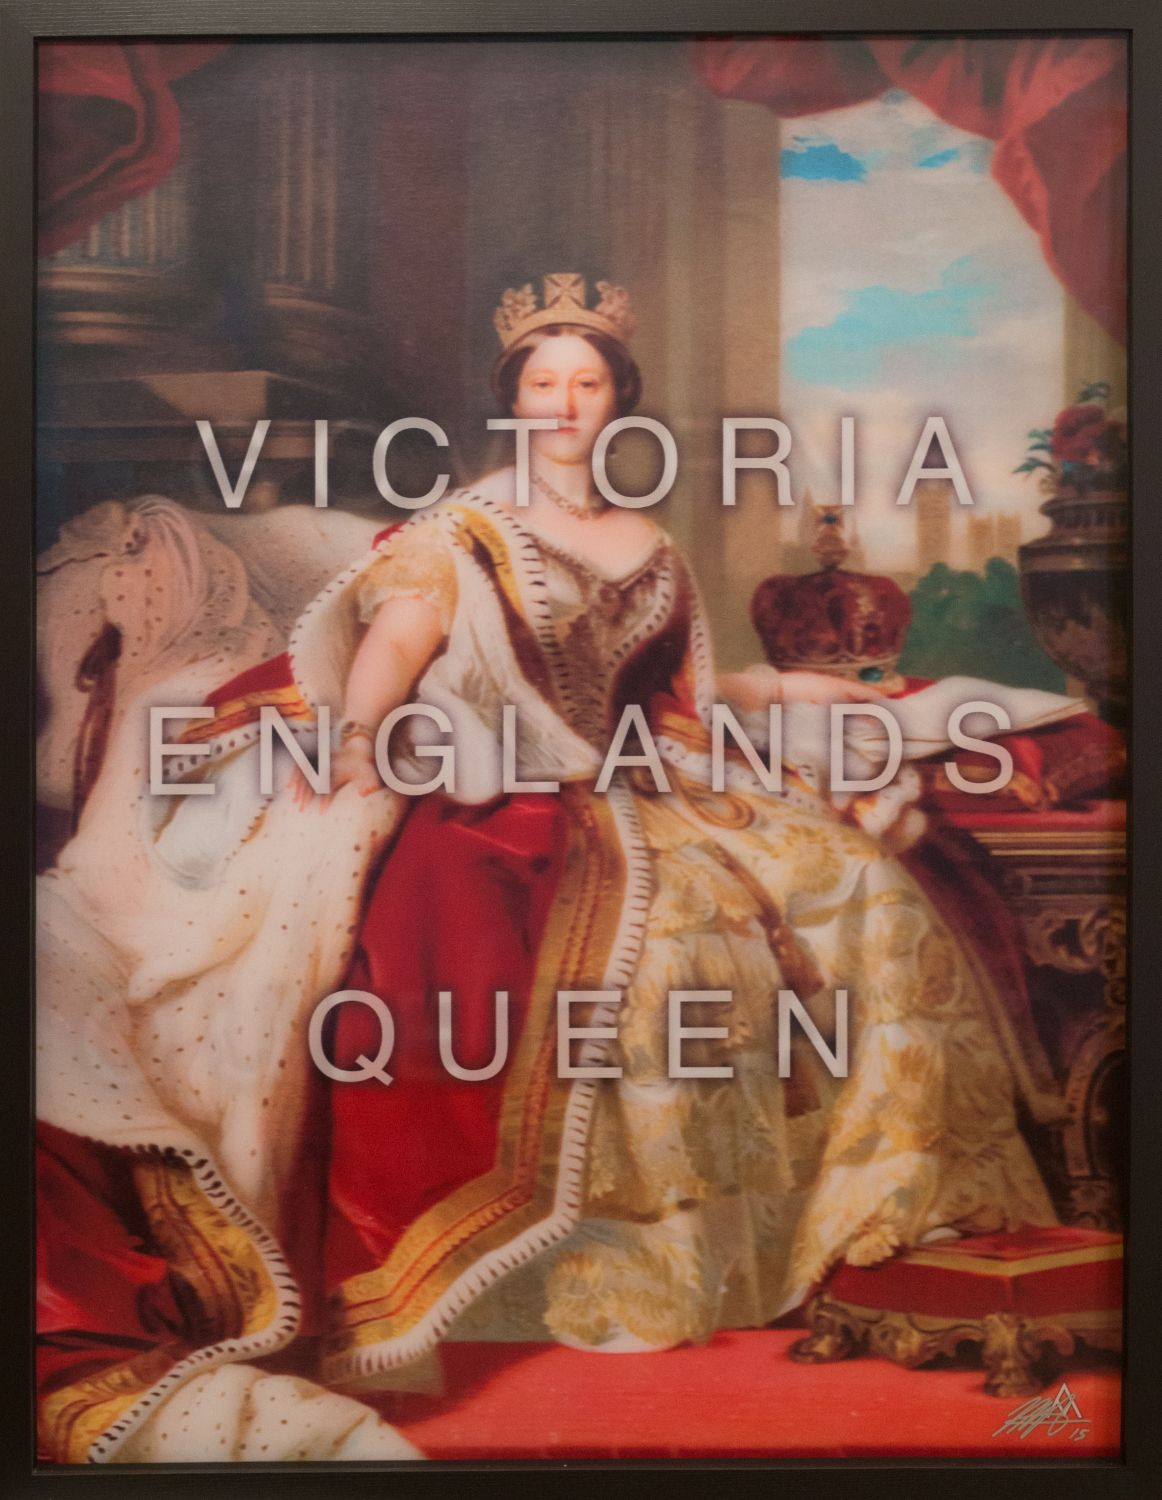 Victoria Englands Queen